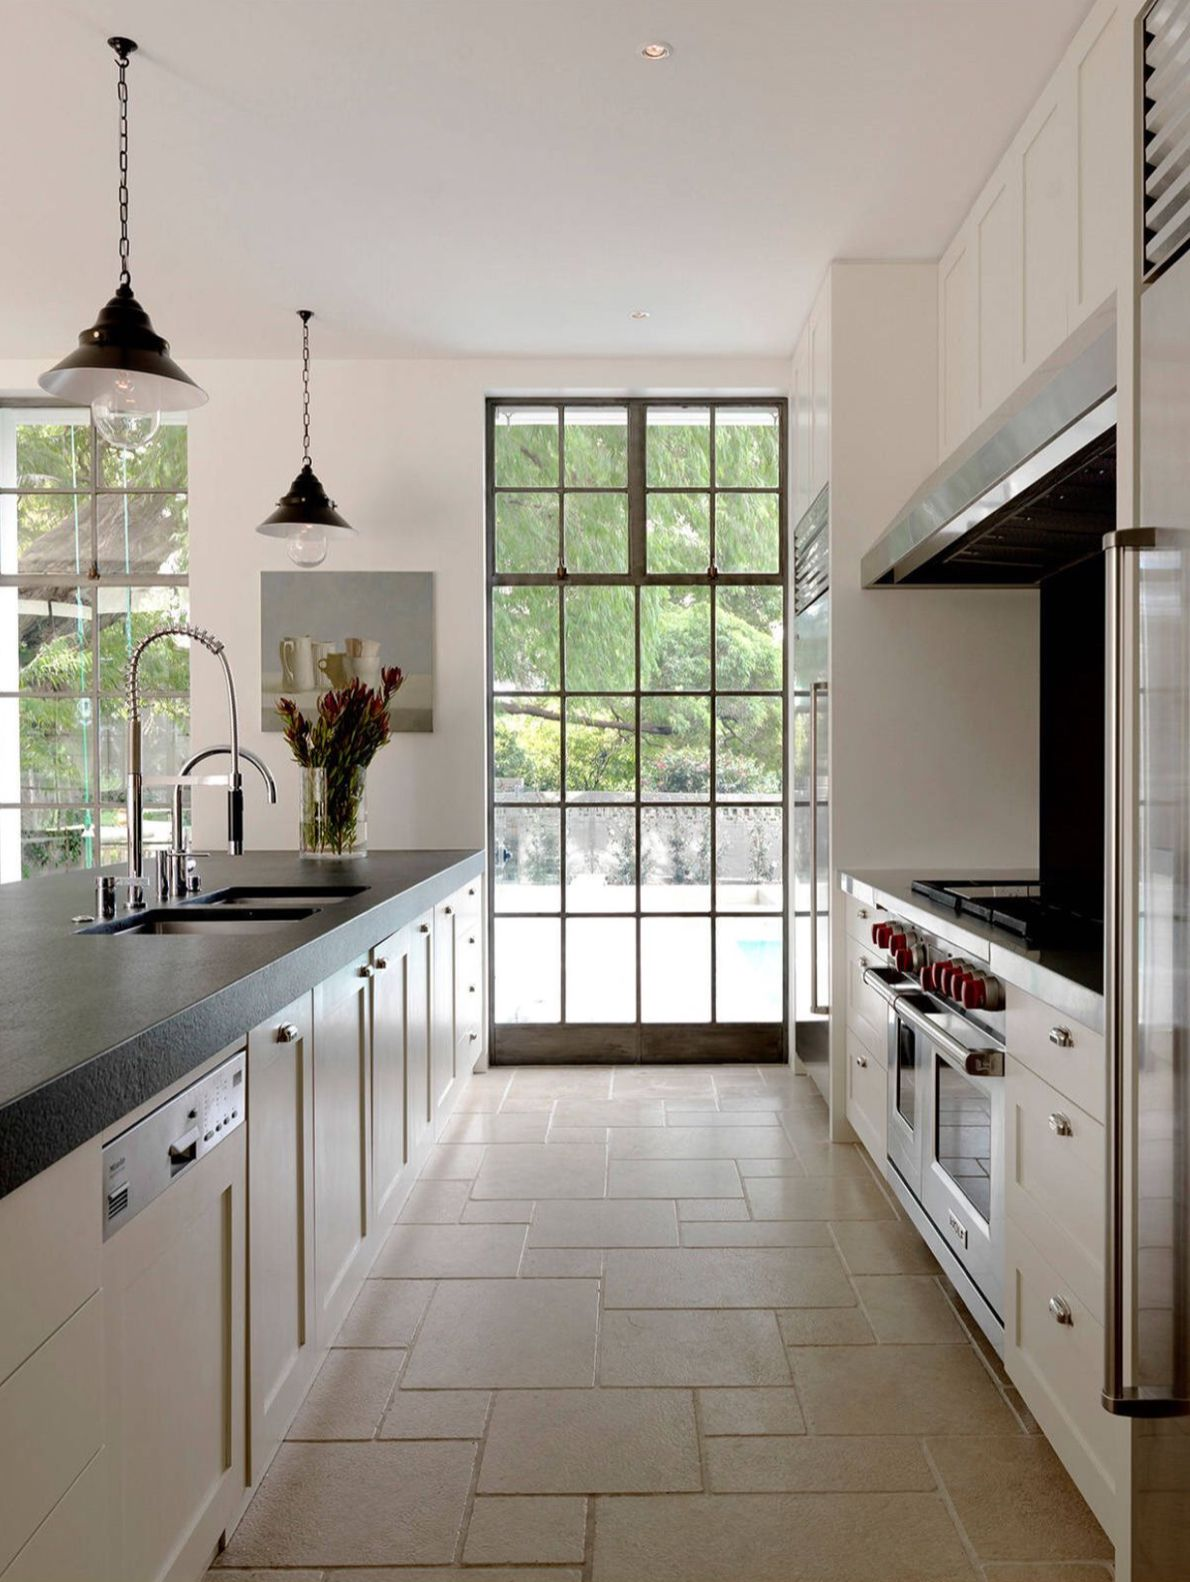 pin by bingley on galley kitchens galley kitchen remodel galley style kitchen small galley on kitchen remodel galley style id=80802